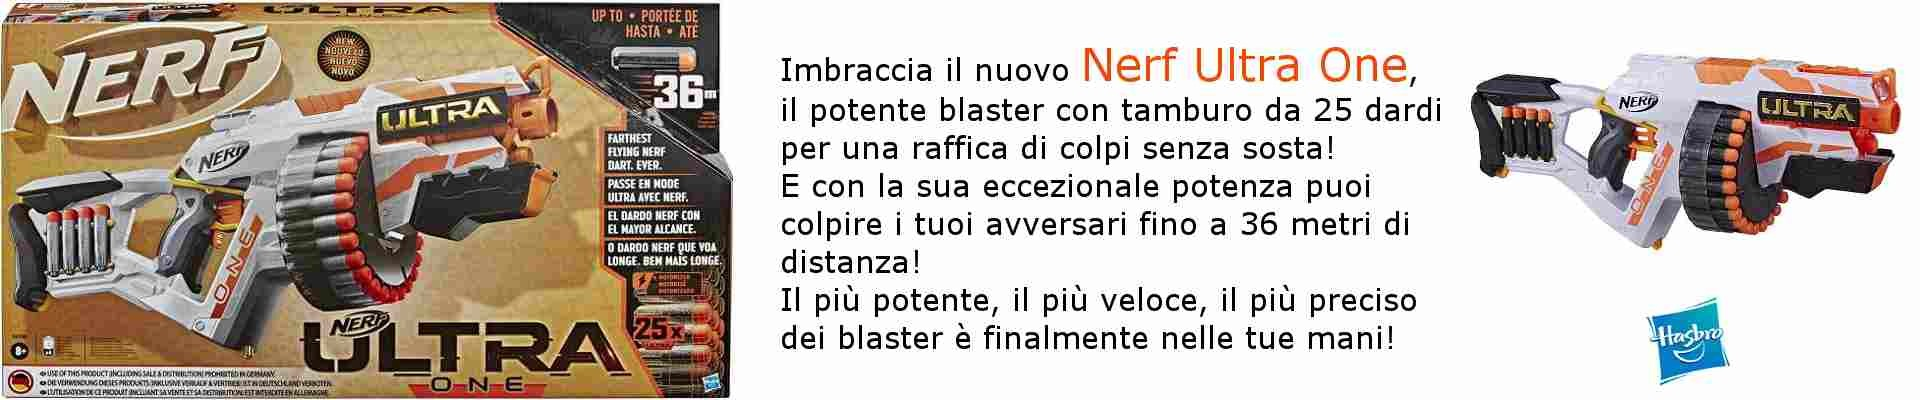 NERF ULTRA ONE MOTORIZZATO